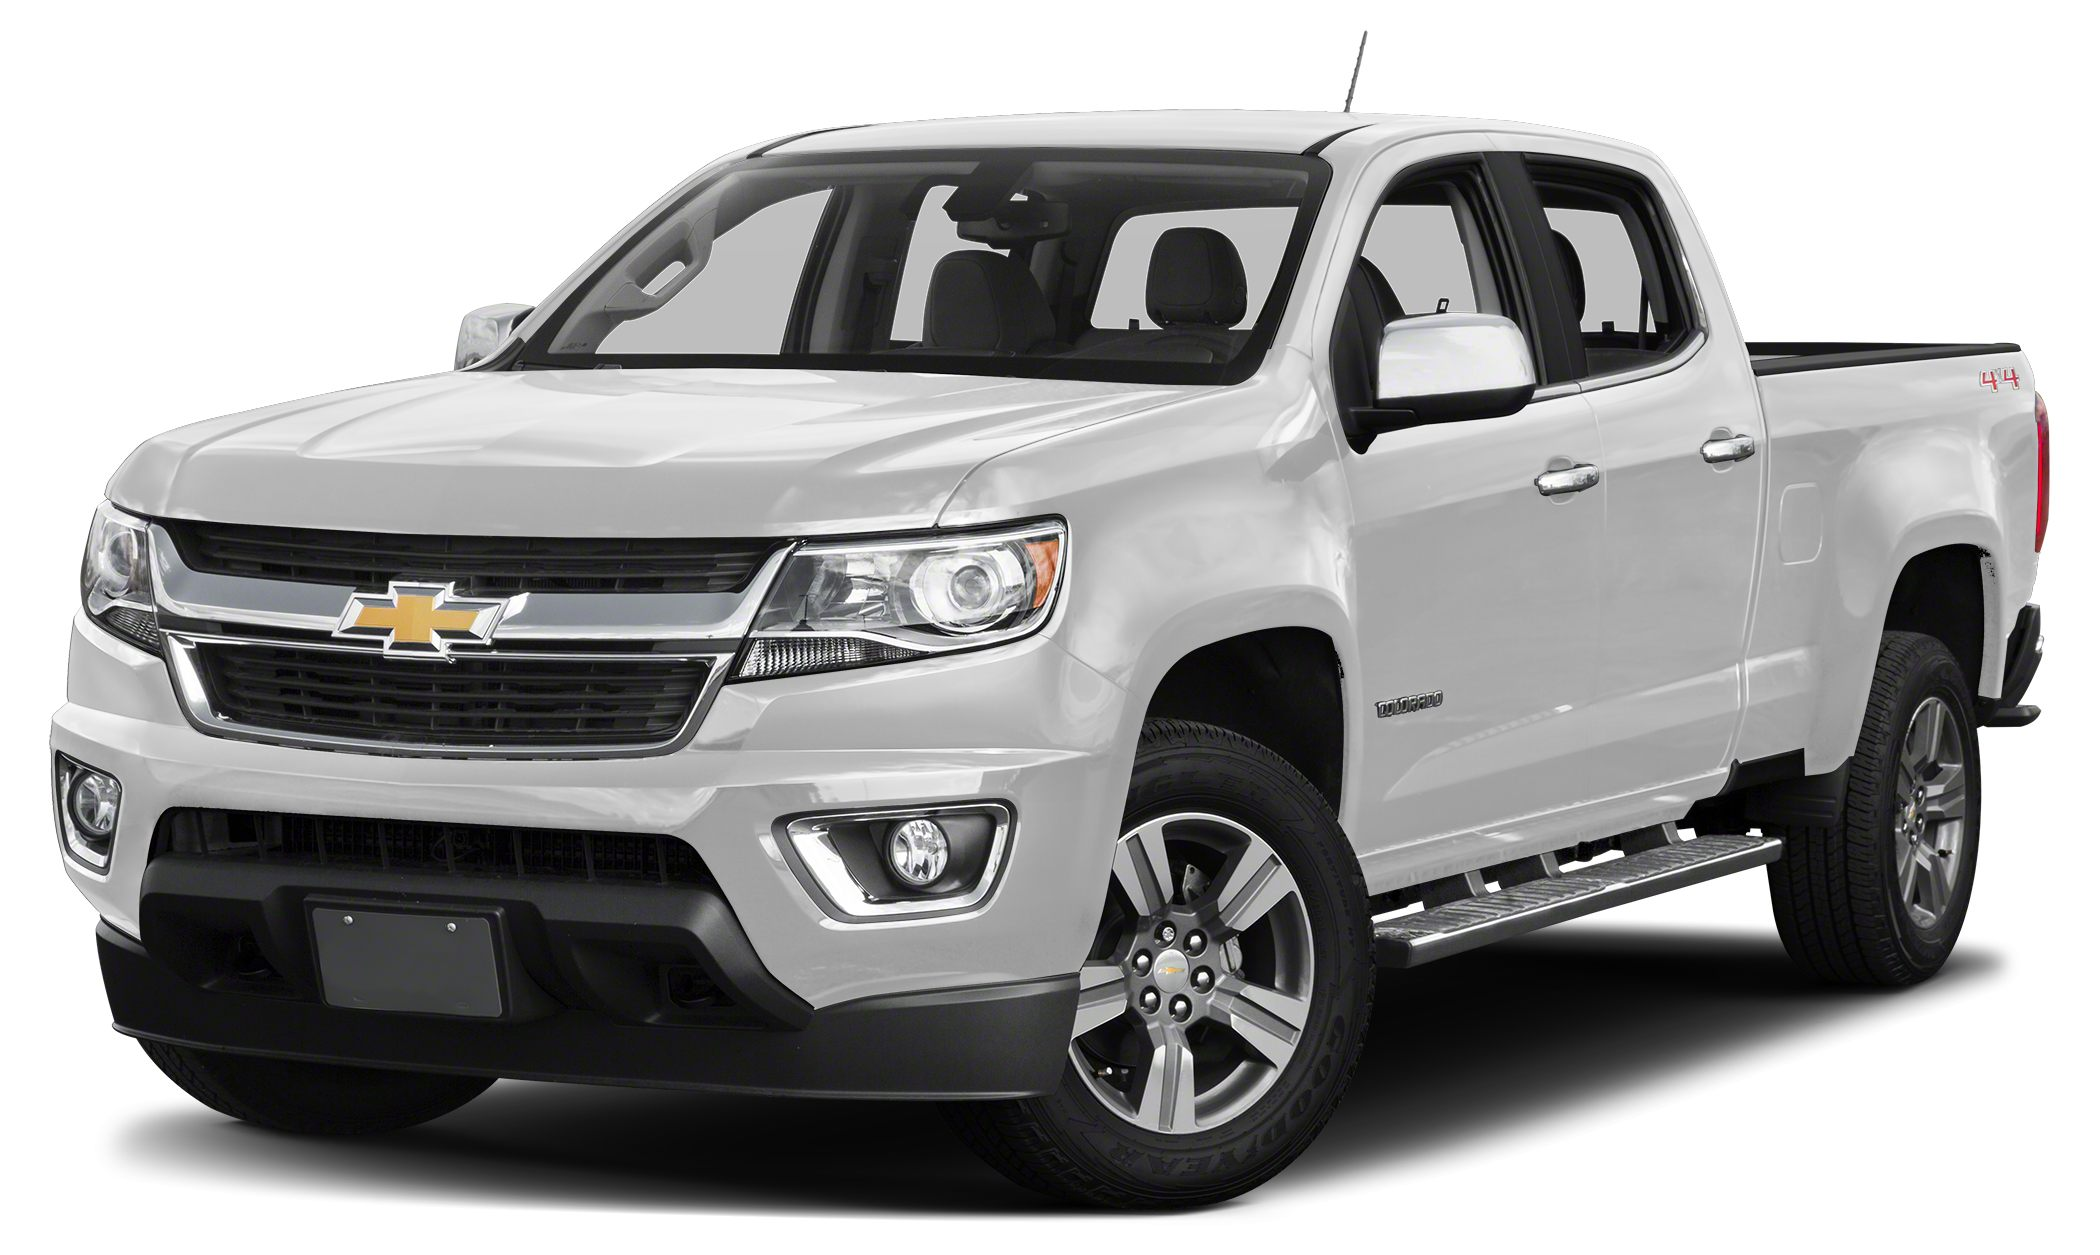 2016 Chevrolet Colorado LT CARFAX 1-Owner GREAT MILES 15495 2WD LT trim EPA 26 MPG Hwy18 MPG